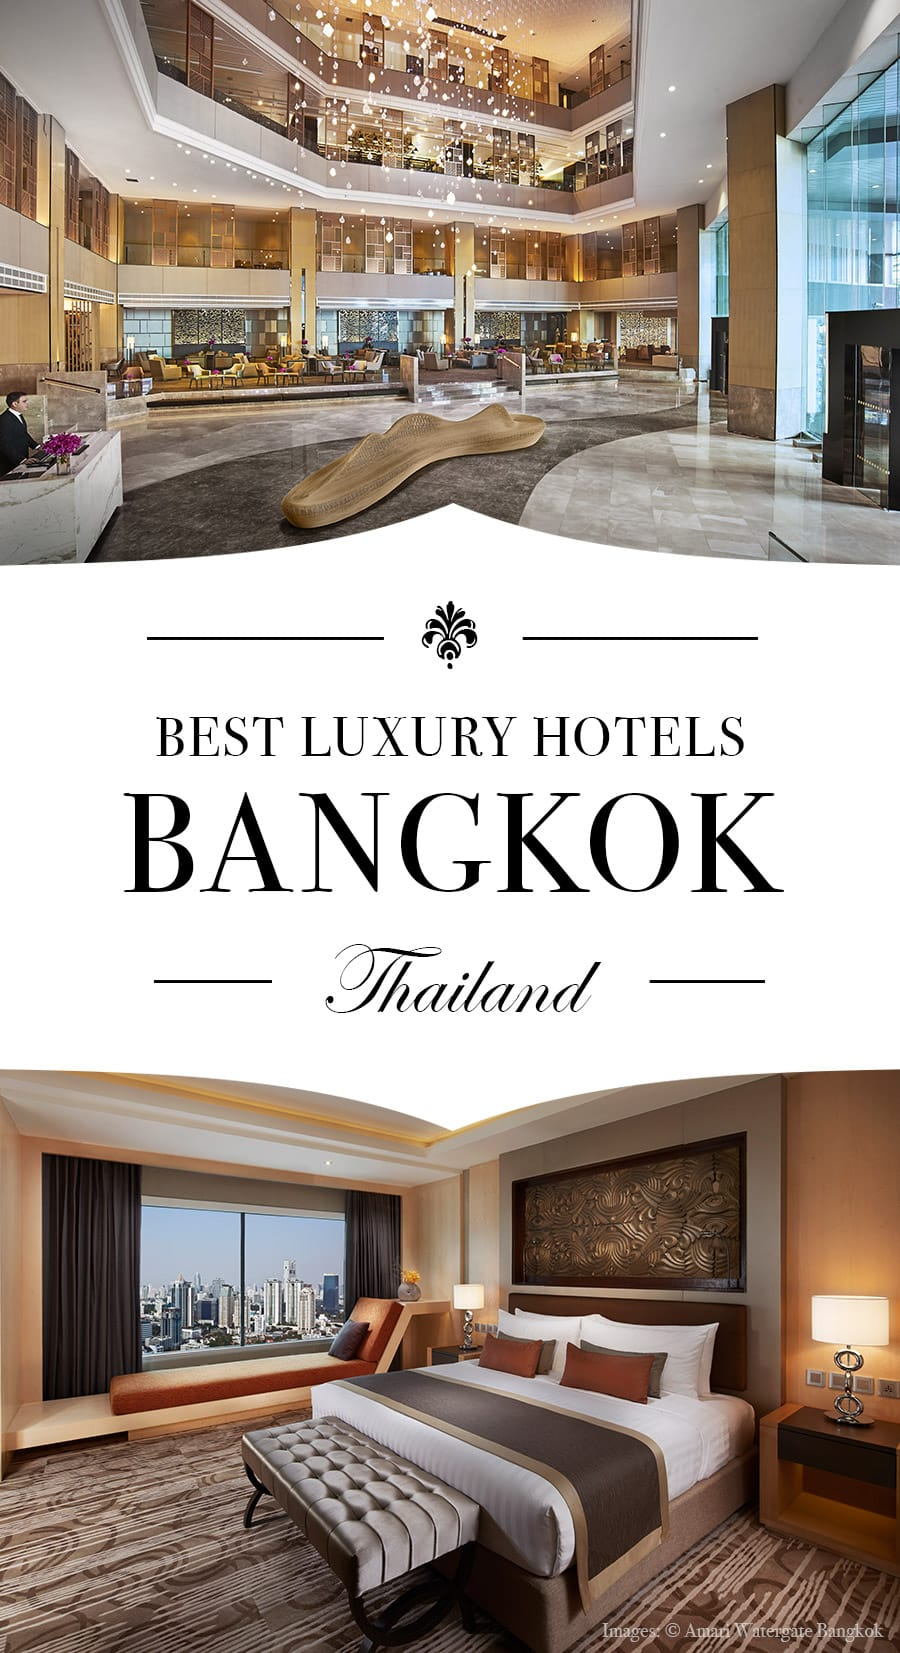 Top Luxury Hotel Interior Designers: 3 Best Luxury Hotels In Bangkok, Thailand (2019)